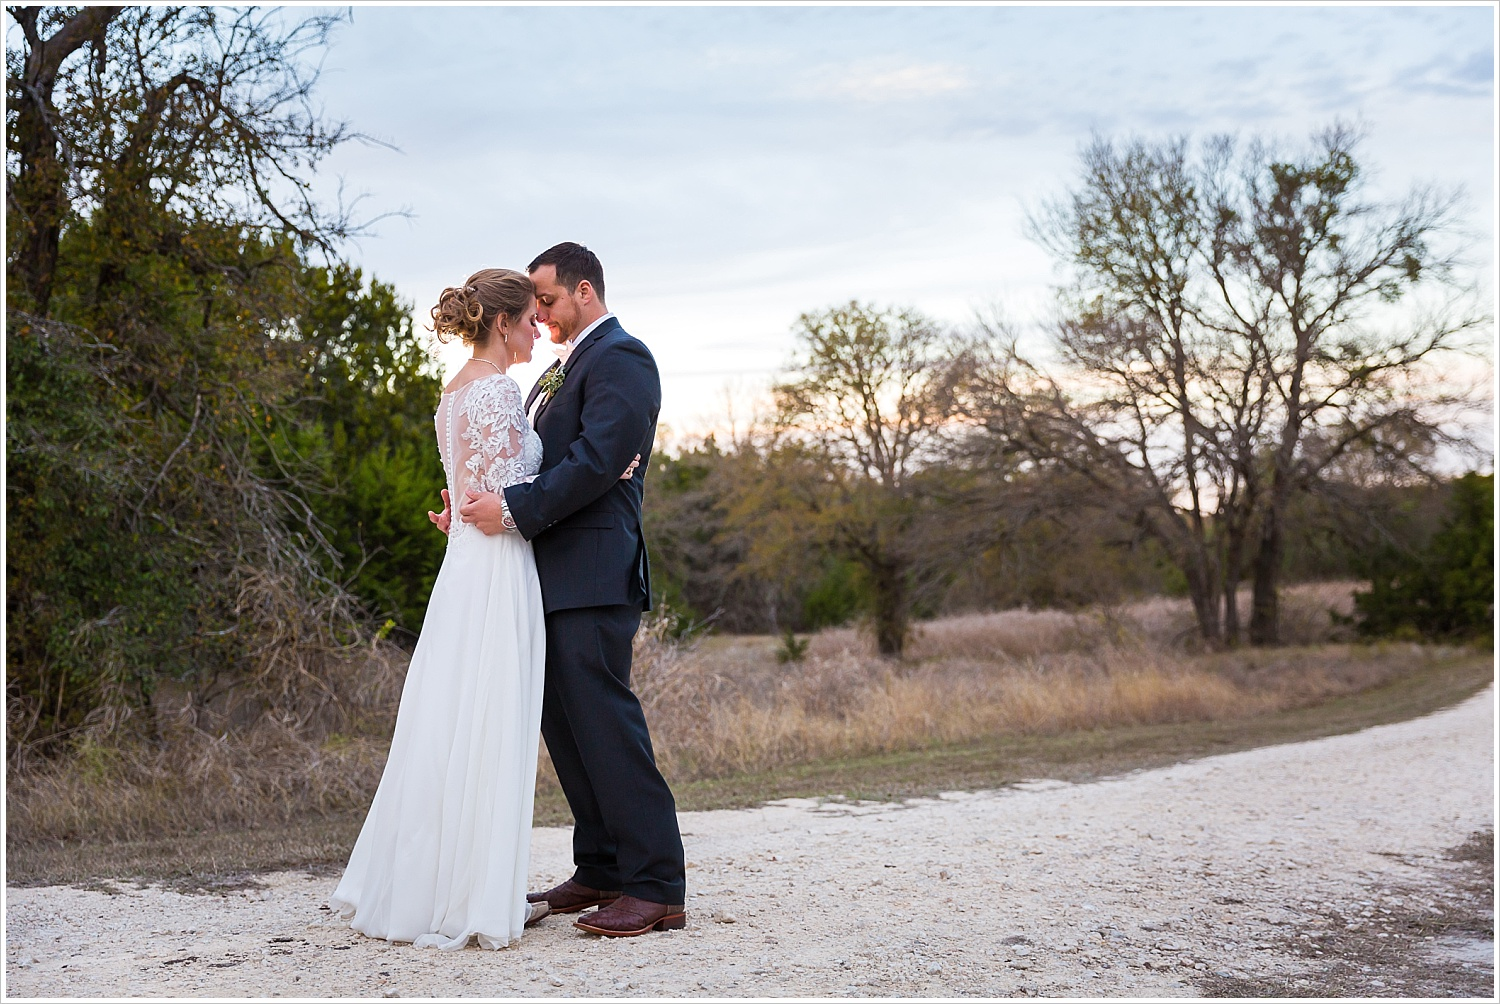 A groom and bride embraces with a sunset behind them on their wedding day at Bear Creek in Gatesville, Texas - Jason & Melaina Photography - www.jasonandmelaina.com